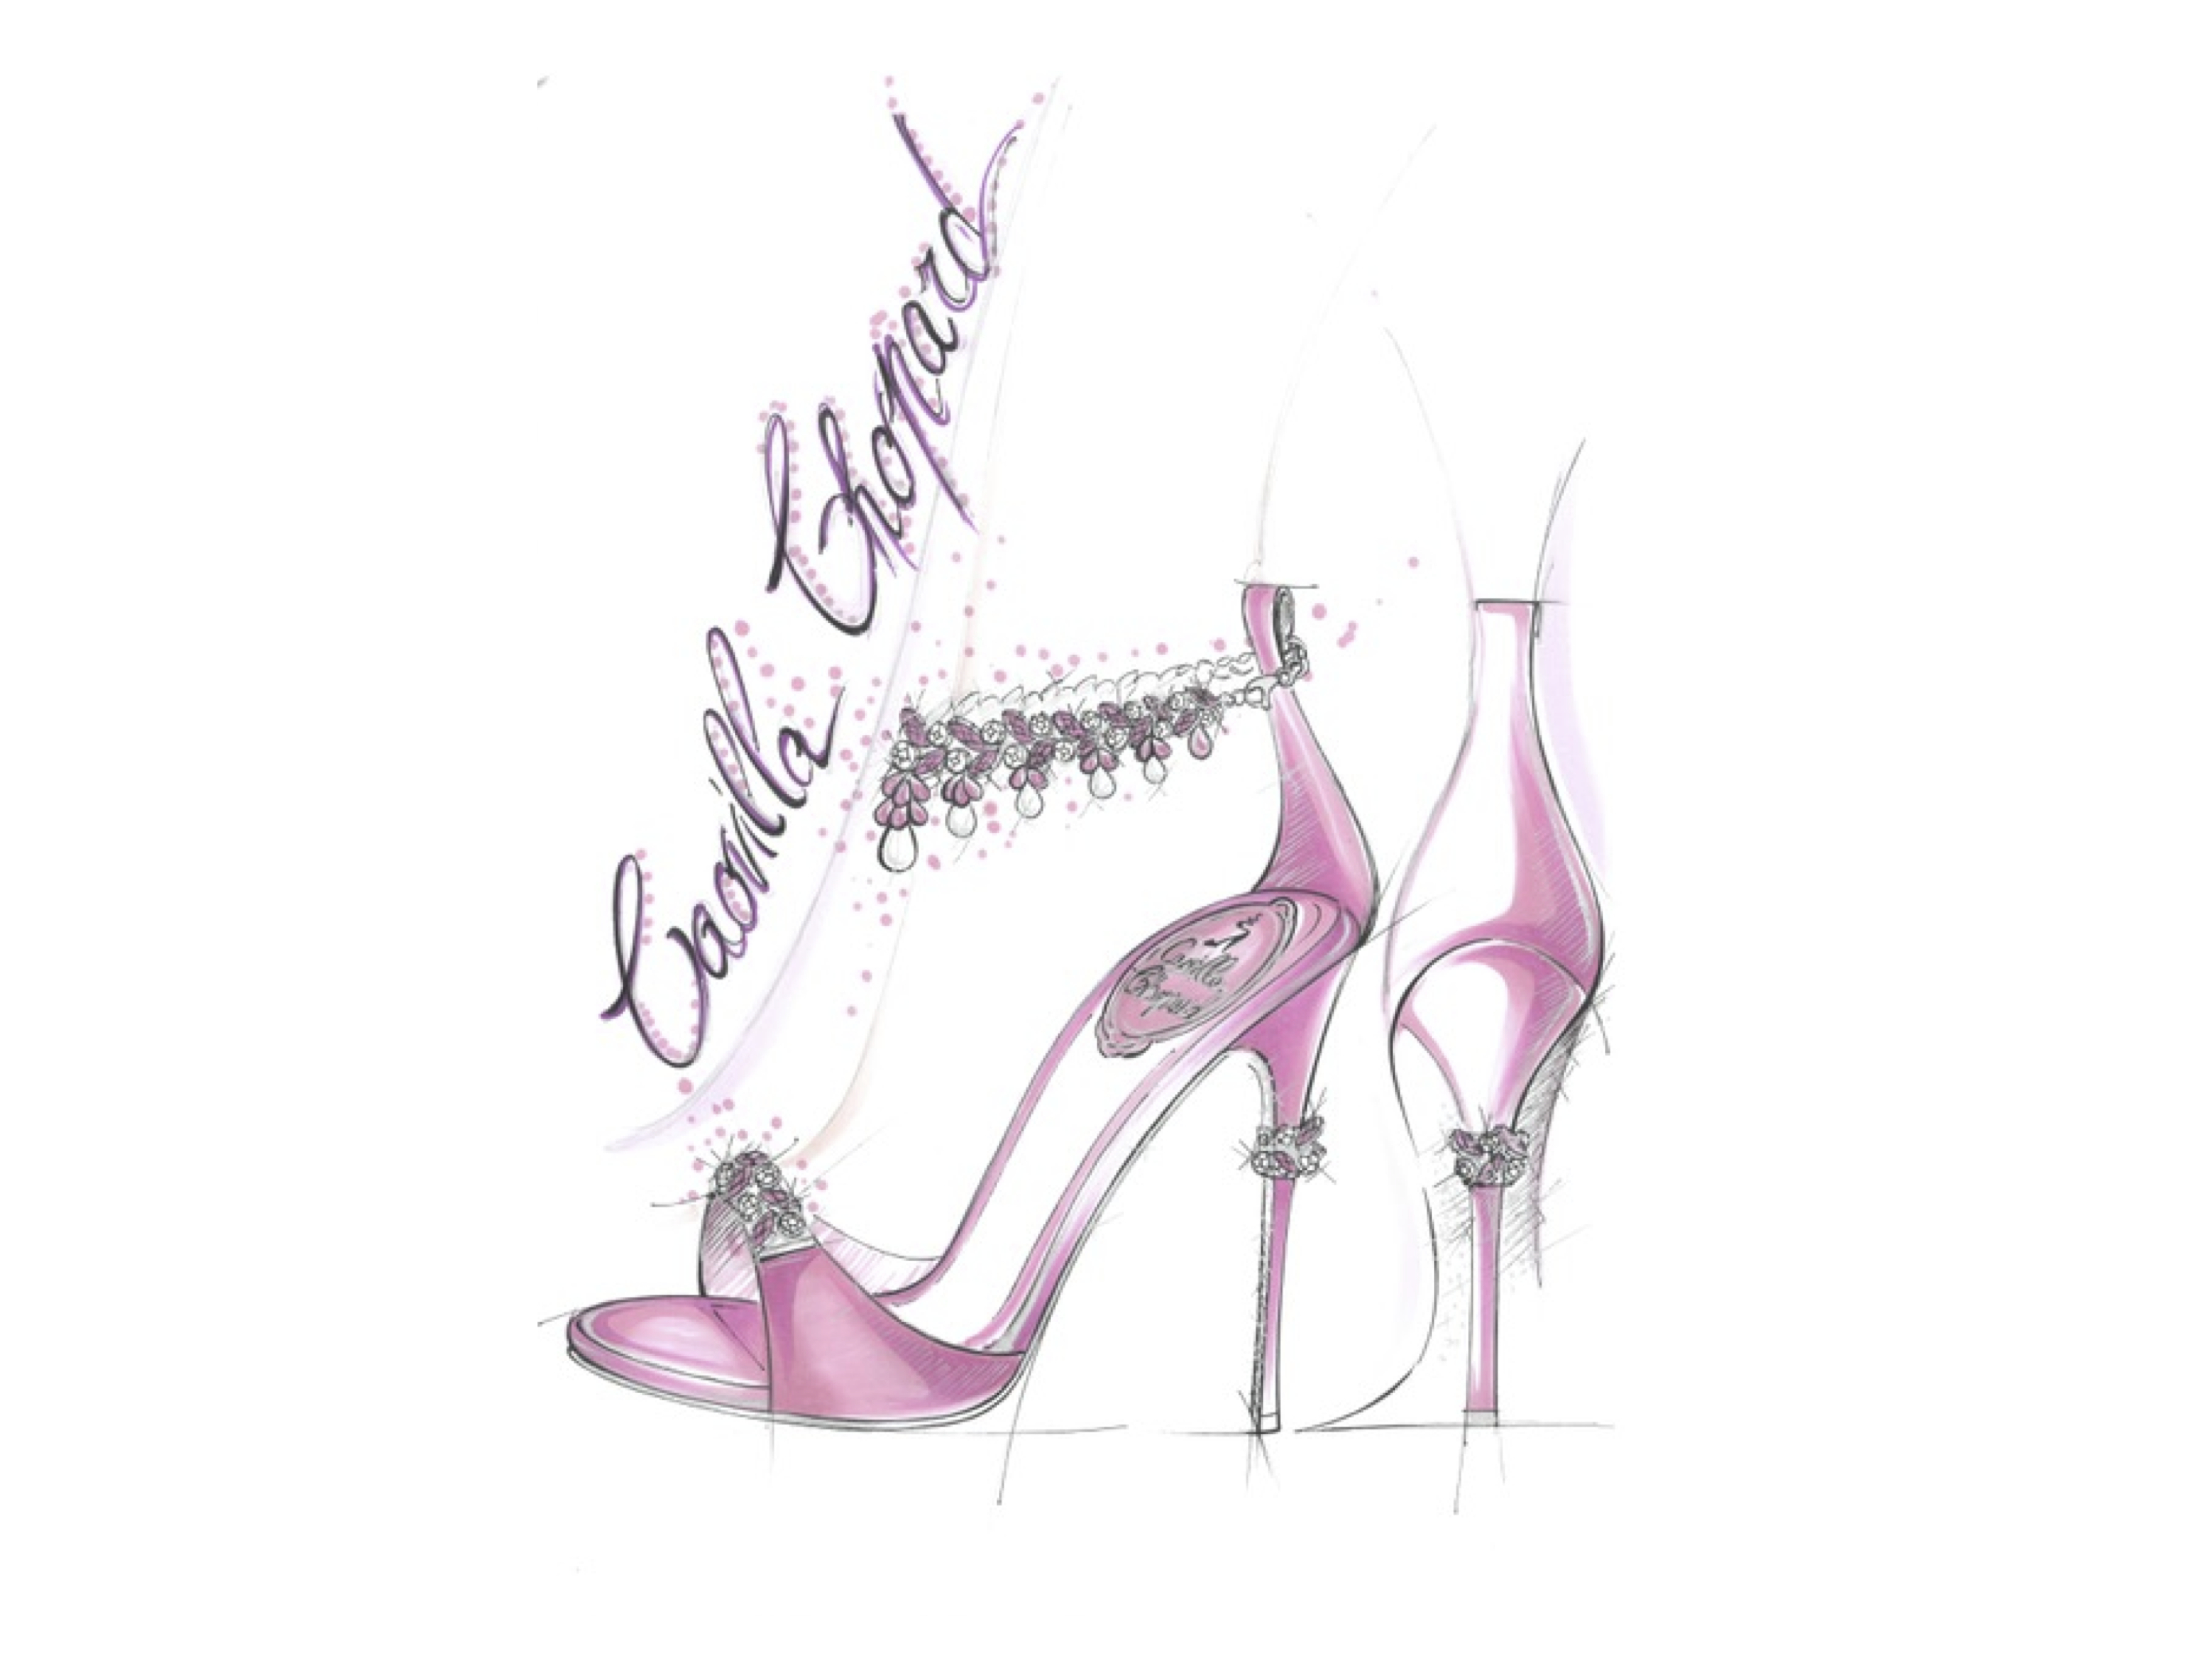 A sketch of the René Caovilla for Chopard sandal style.